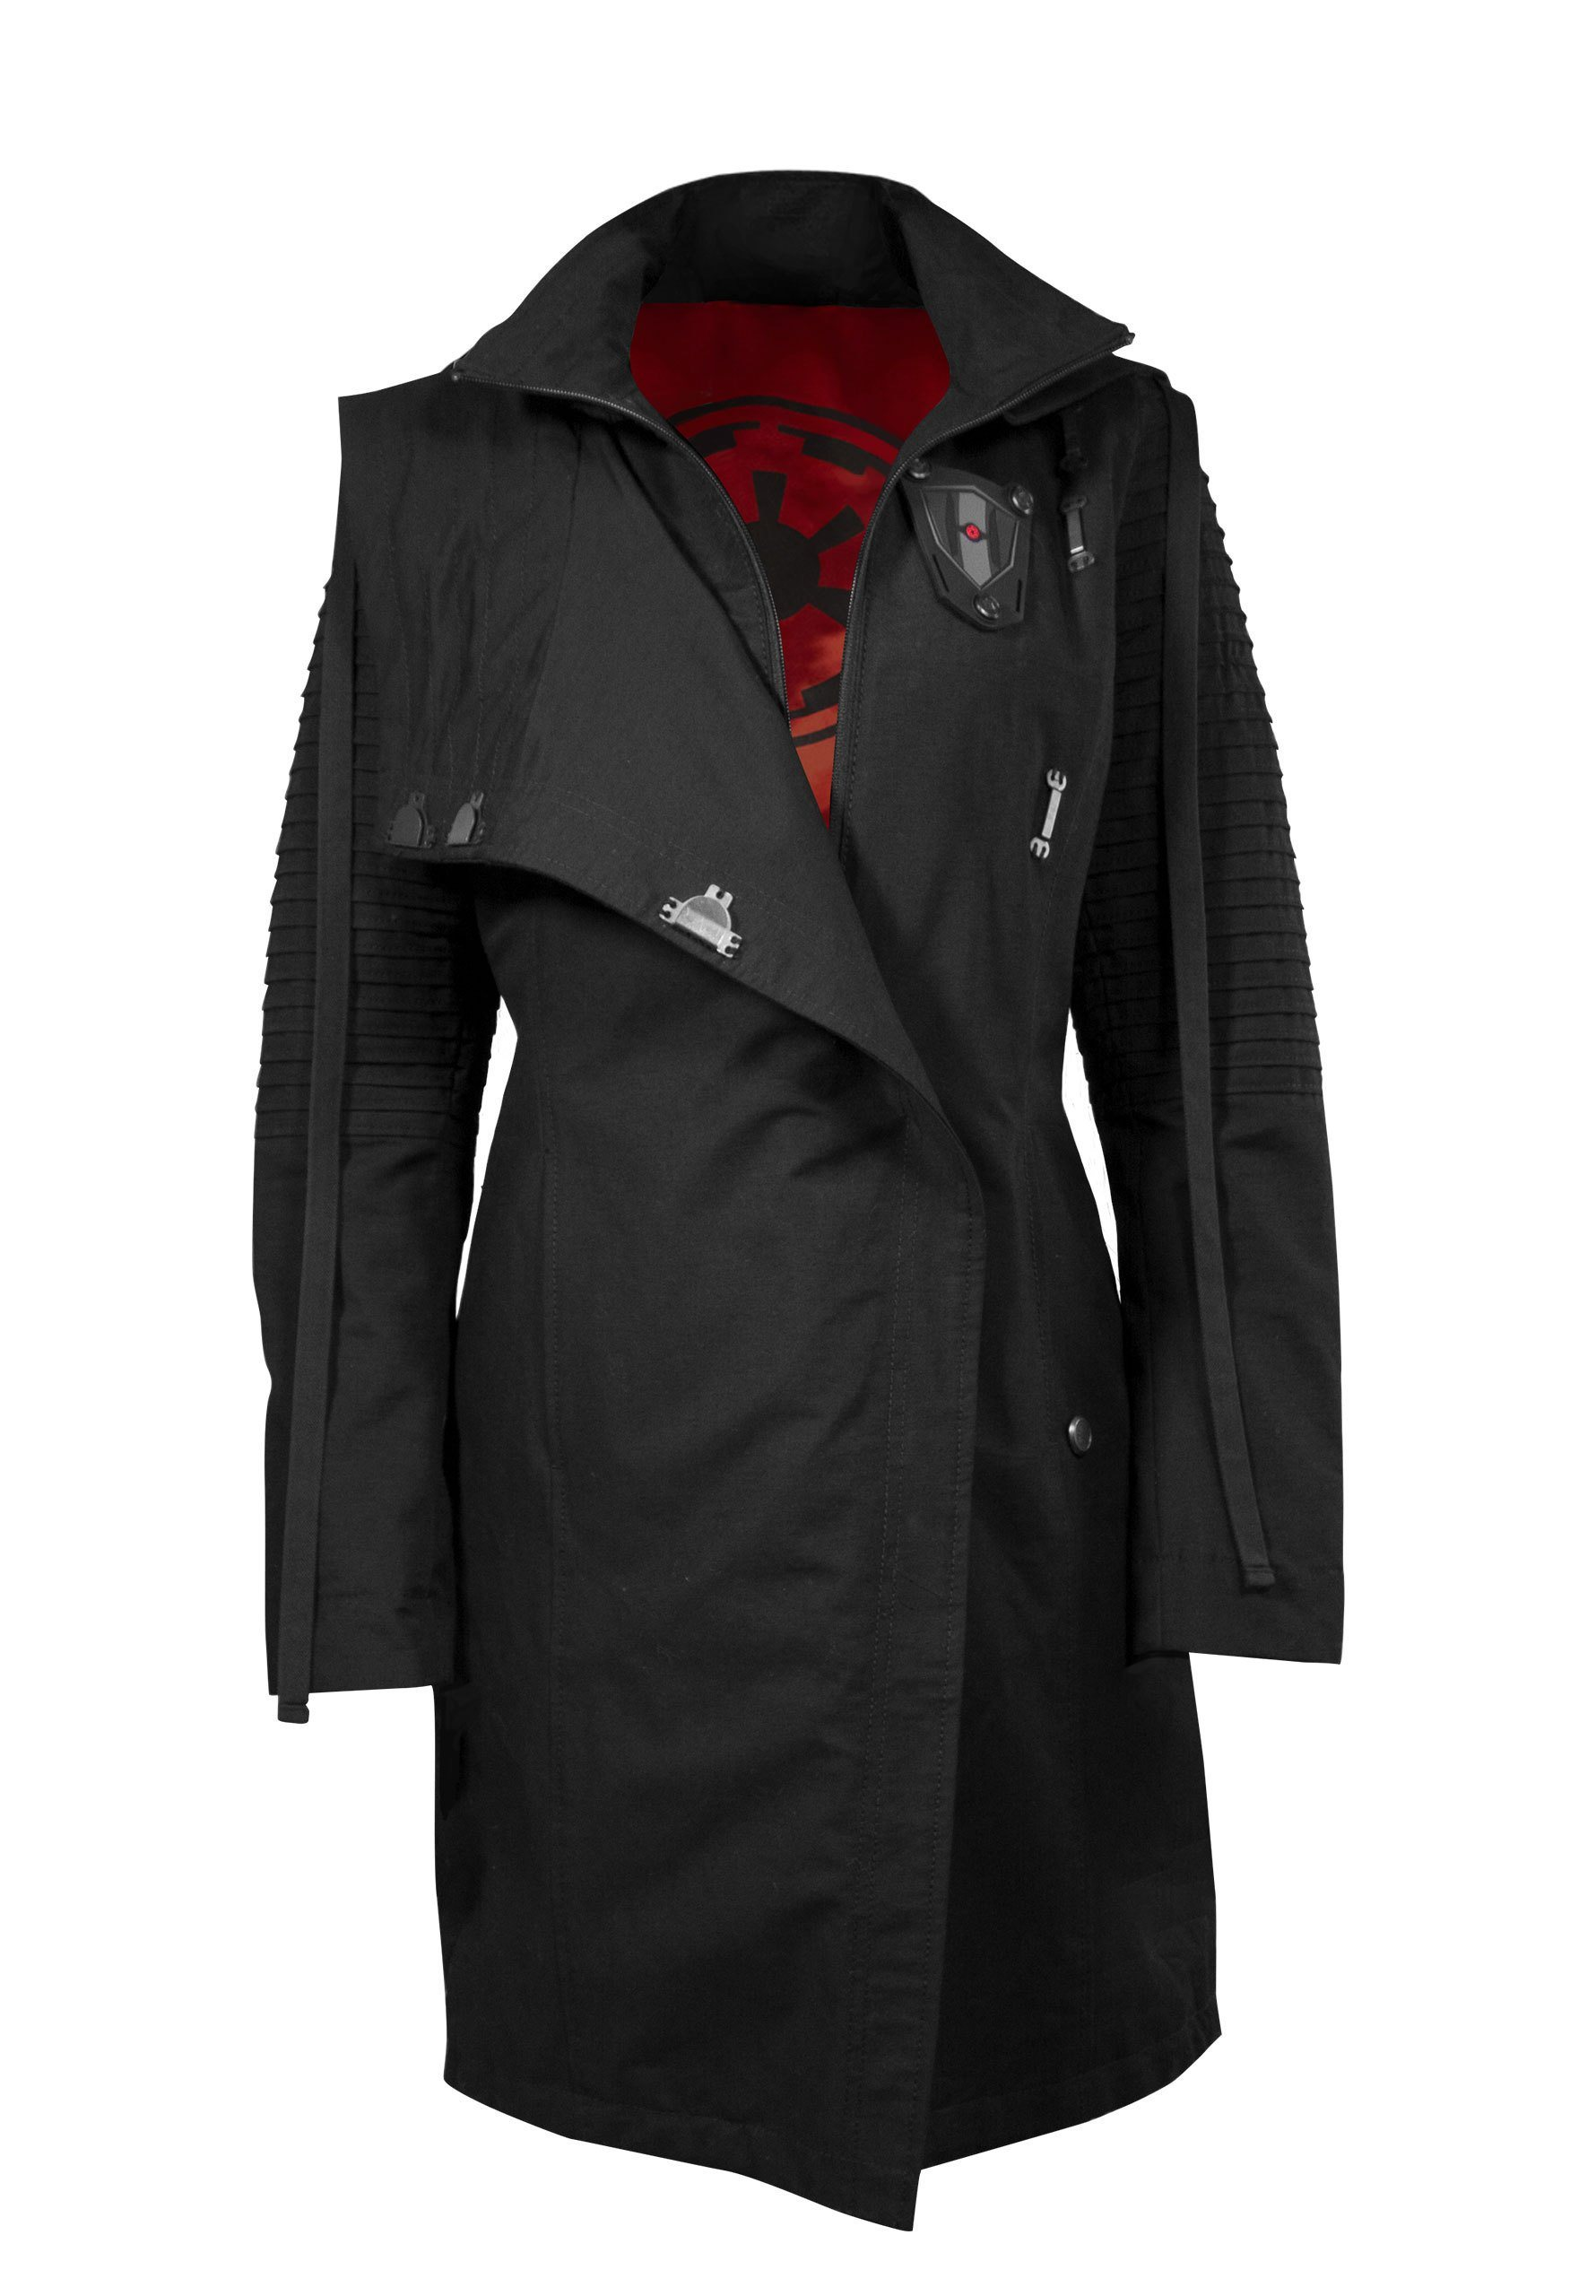 Musterbrand Trenchcoat »Sith Lady«, Star Wars Kollektion | Bekleidung > Mäntel > Trenchcoats | Musterbrand